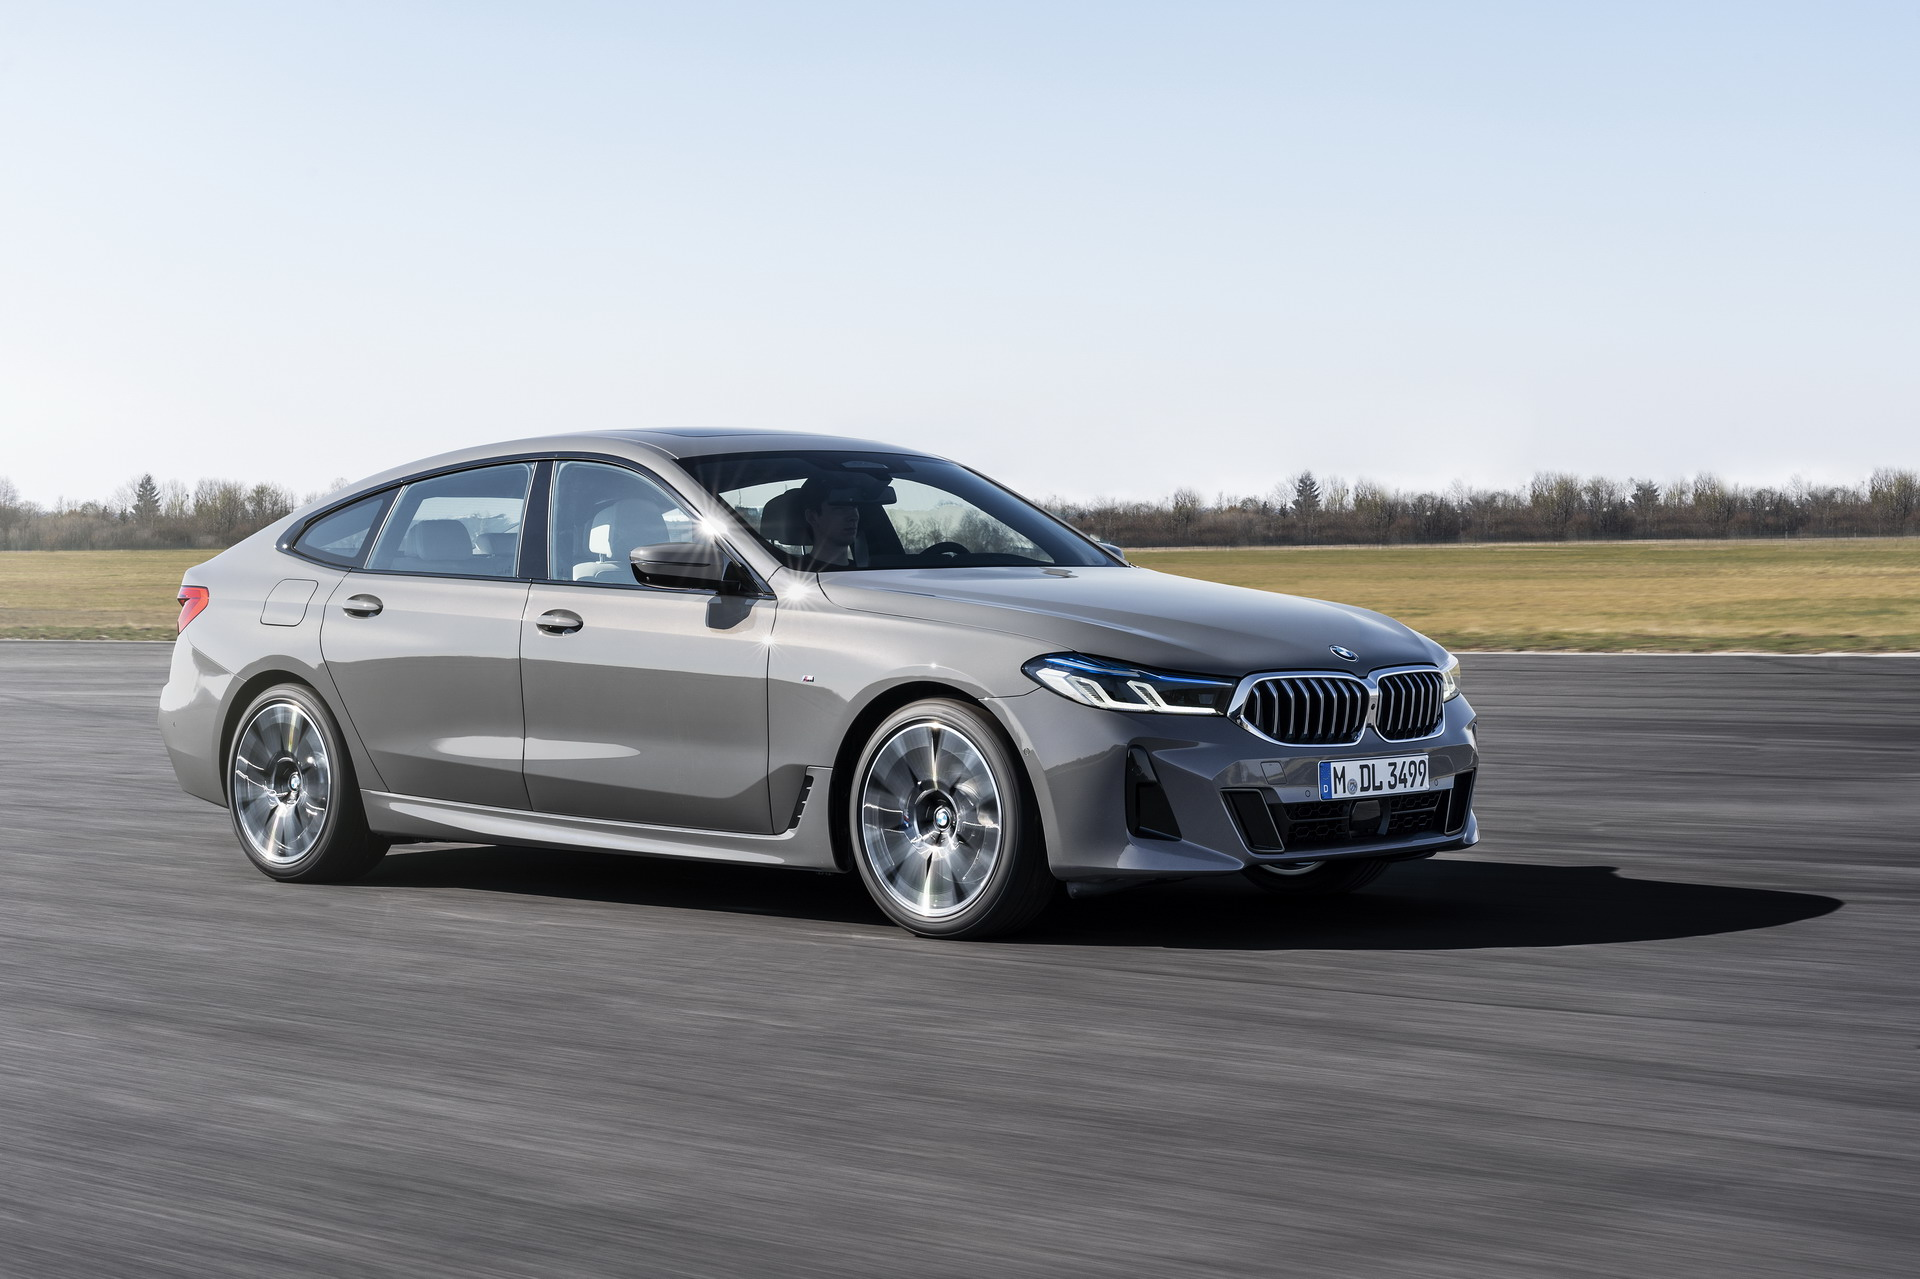 The New BMW 640i xDrive GT G32 LCI 3